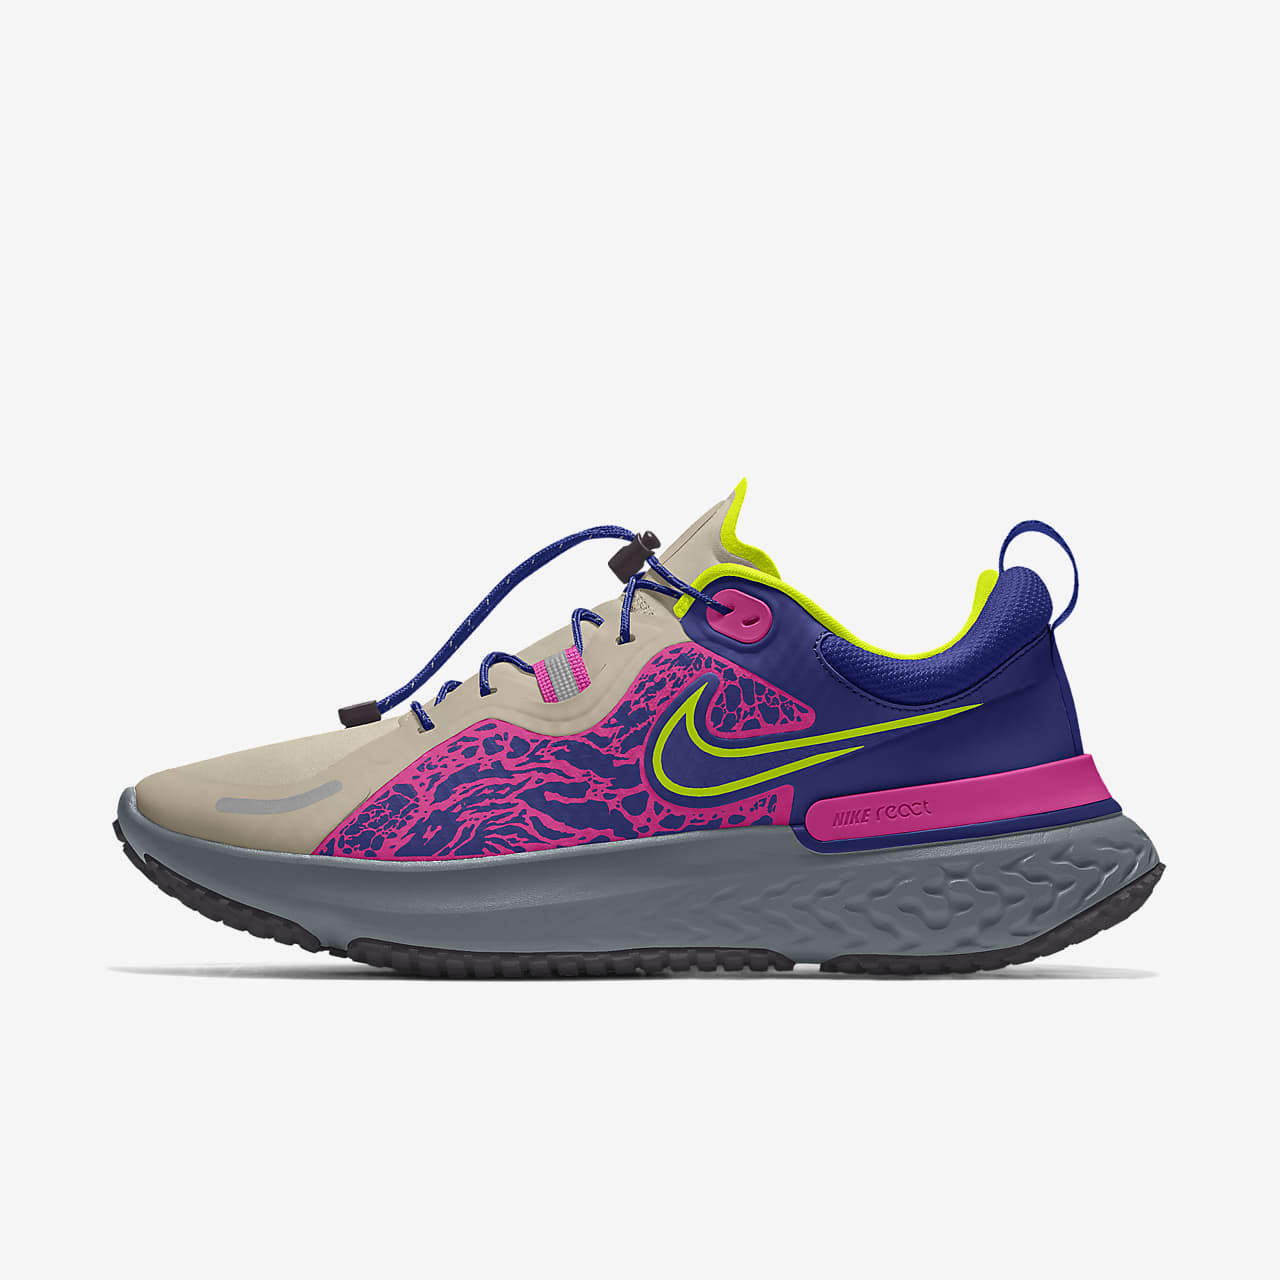 Chaussure de running personnalisable Nike React Miler Shield By You